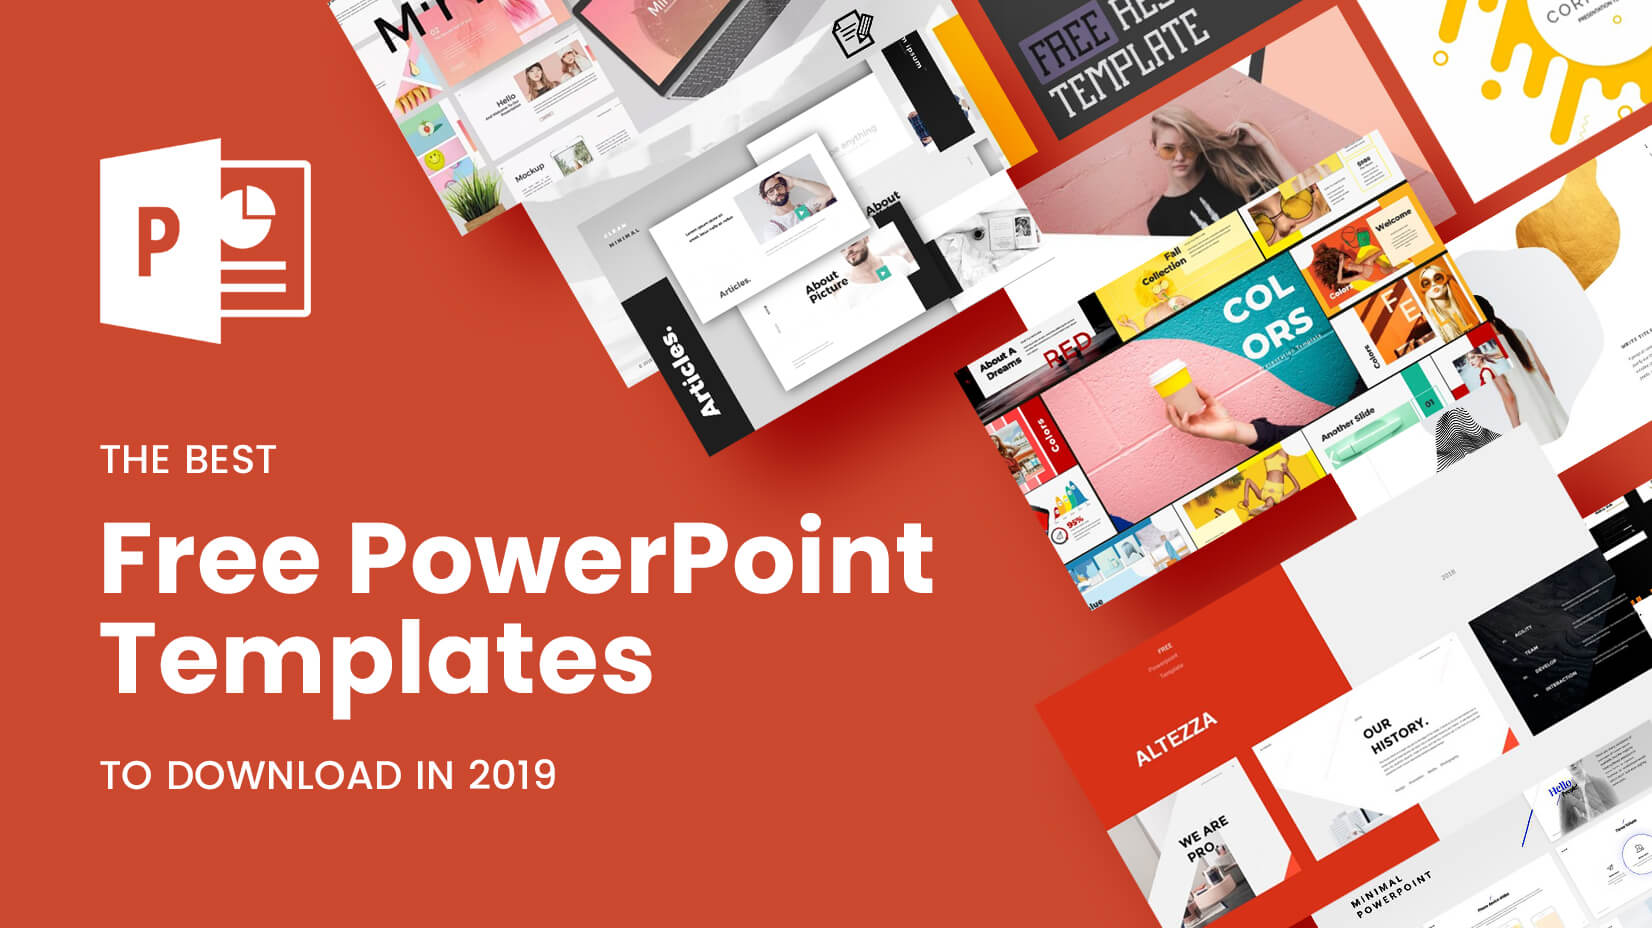 The Best Free PowerPoint Templates to Download in 2019 | GraphicMama